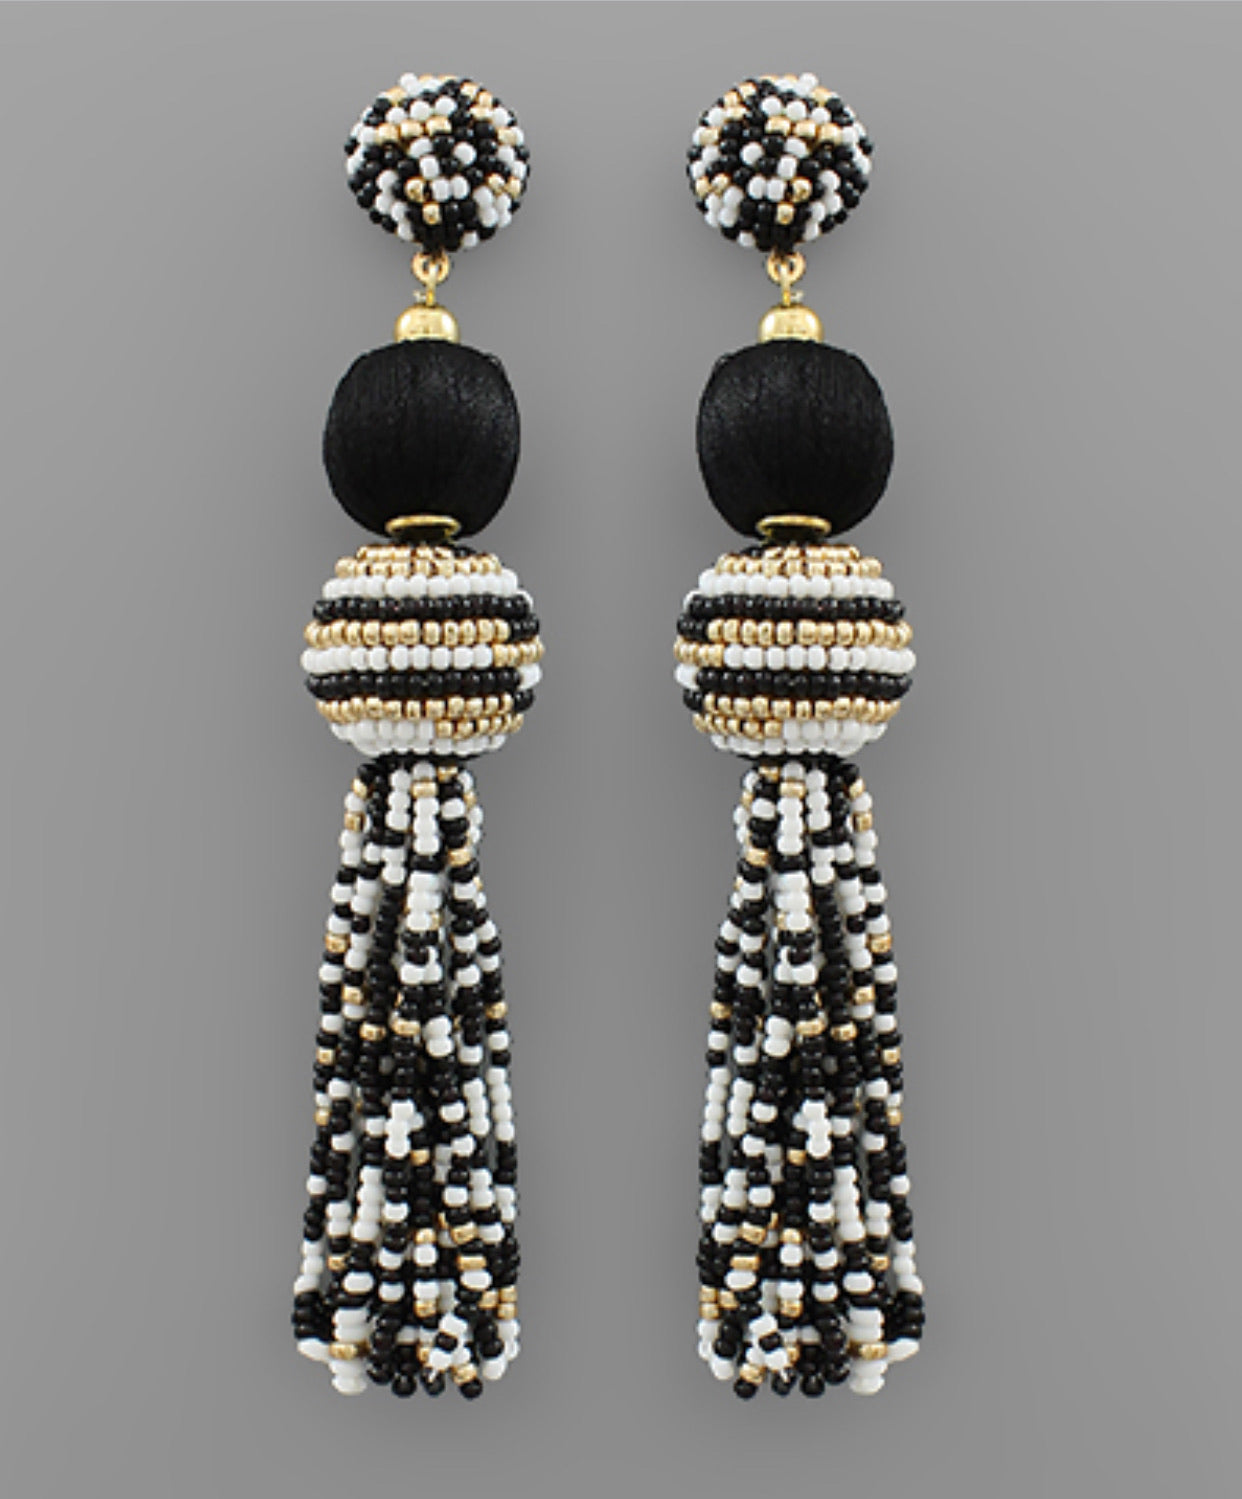 Bead Ball & Tassel Earrings